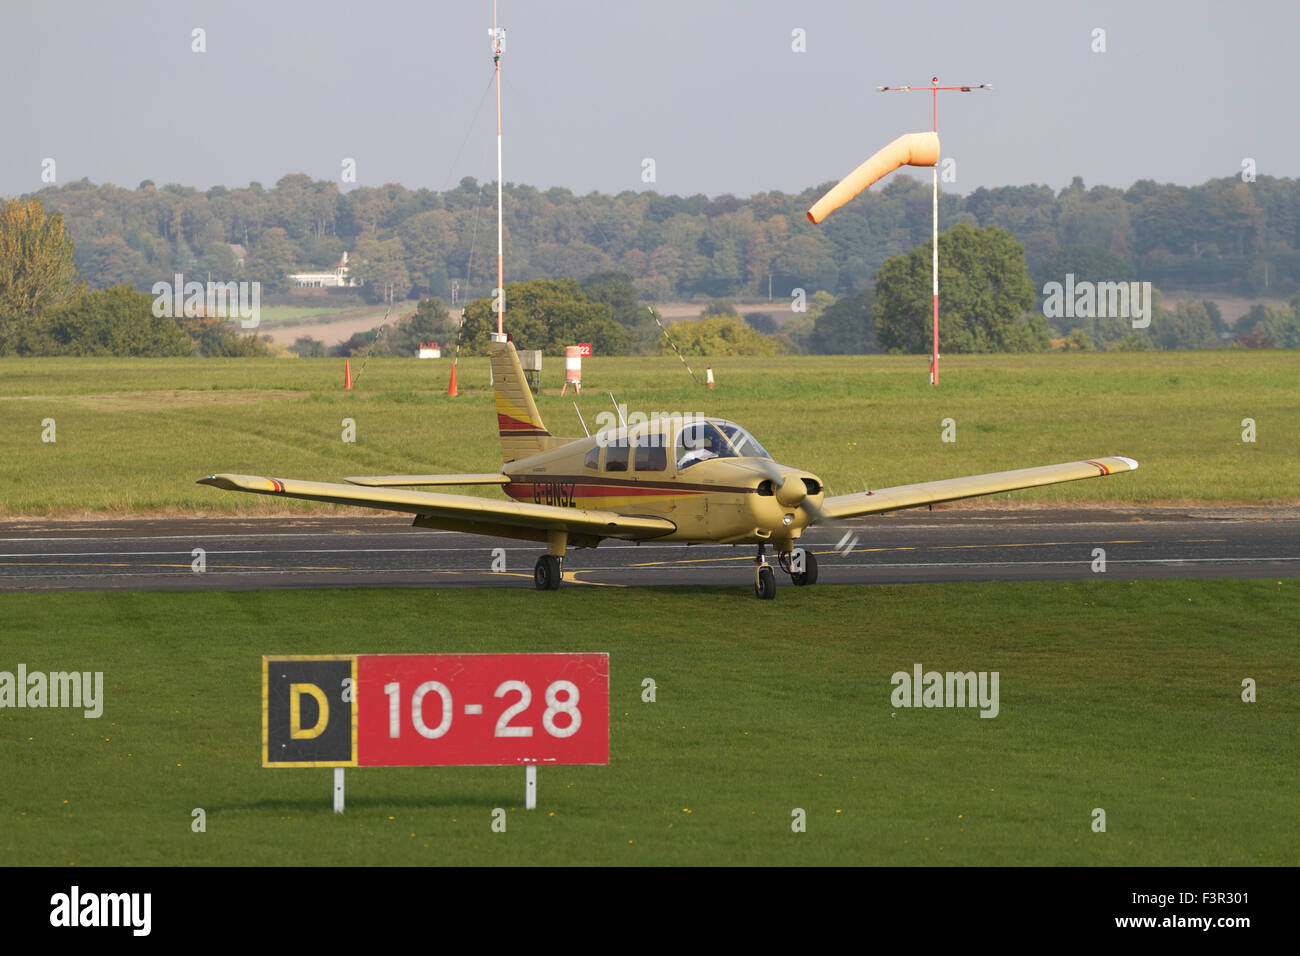 Single engined light aircraft at Wolverhampton Halfpenny Green Airport, UK - Stock Image